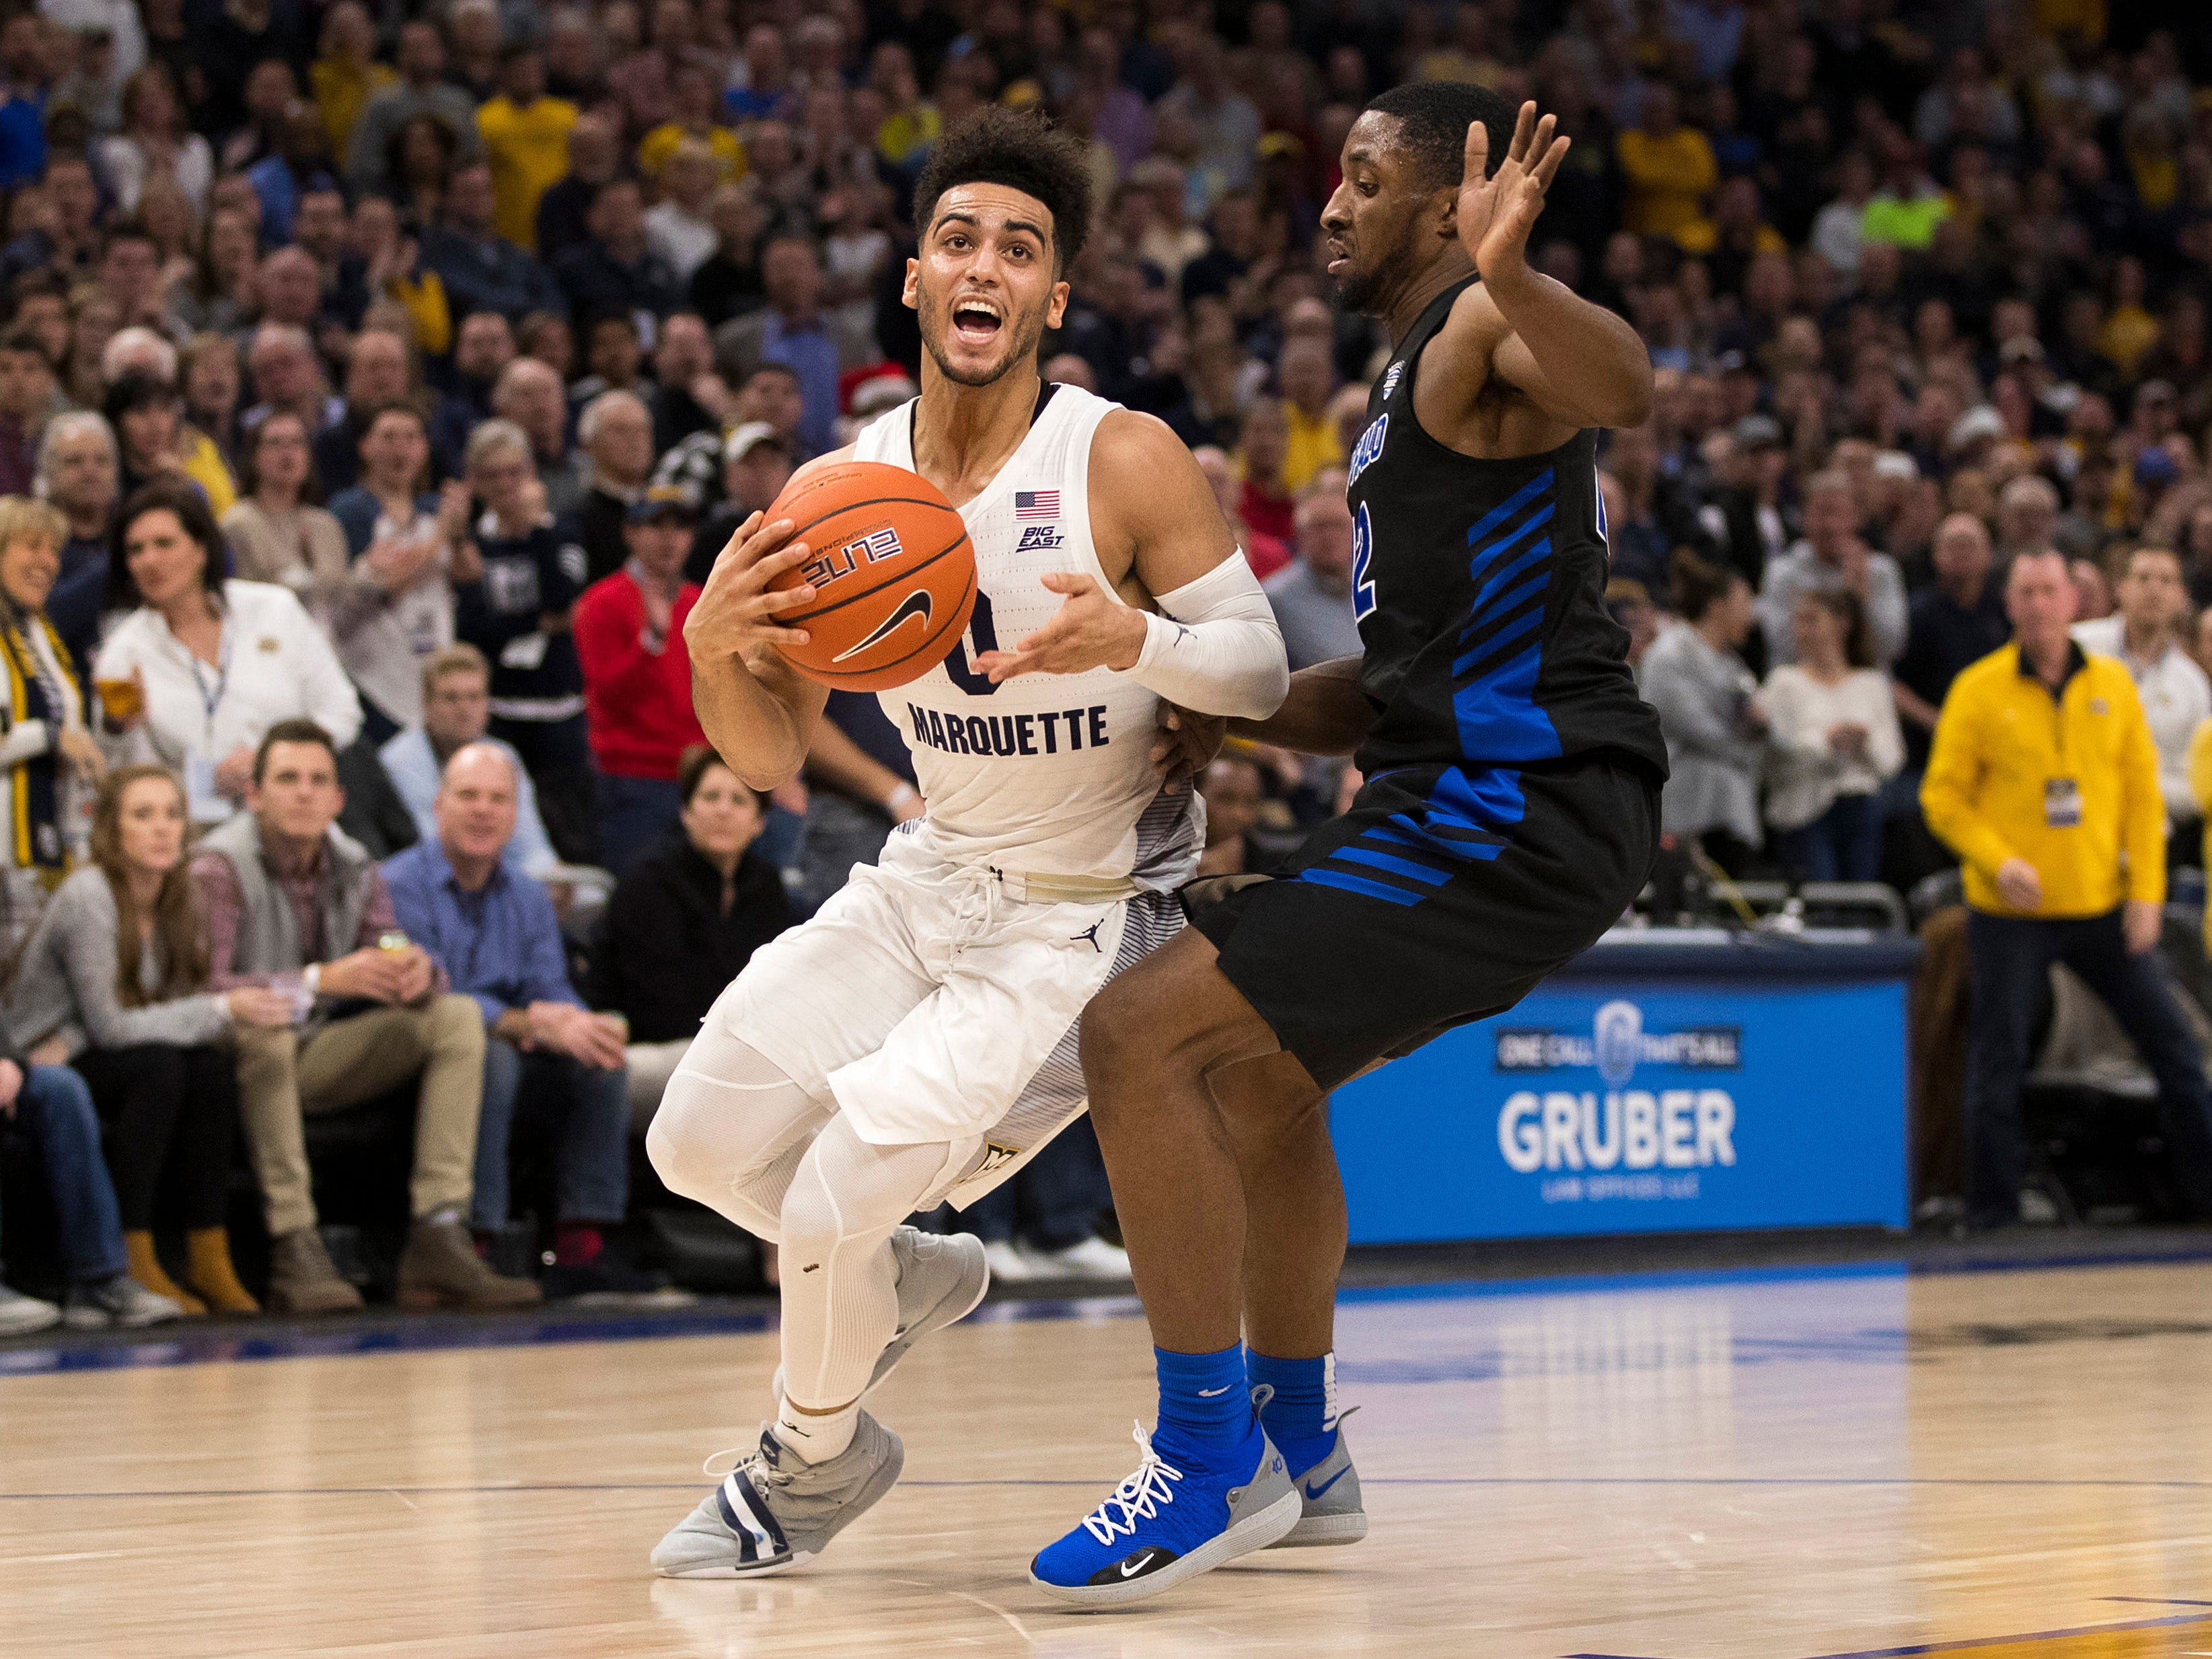 Golden Eagles guard Markus Howard drives to the basket against Buffalo guard Dontay Caruthers during the second half Friday night. Howard scored 40 of his 45 points in the second half.